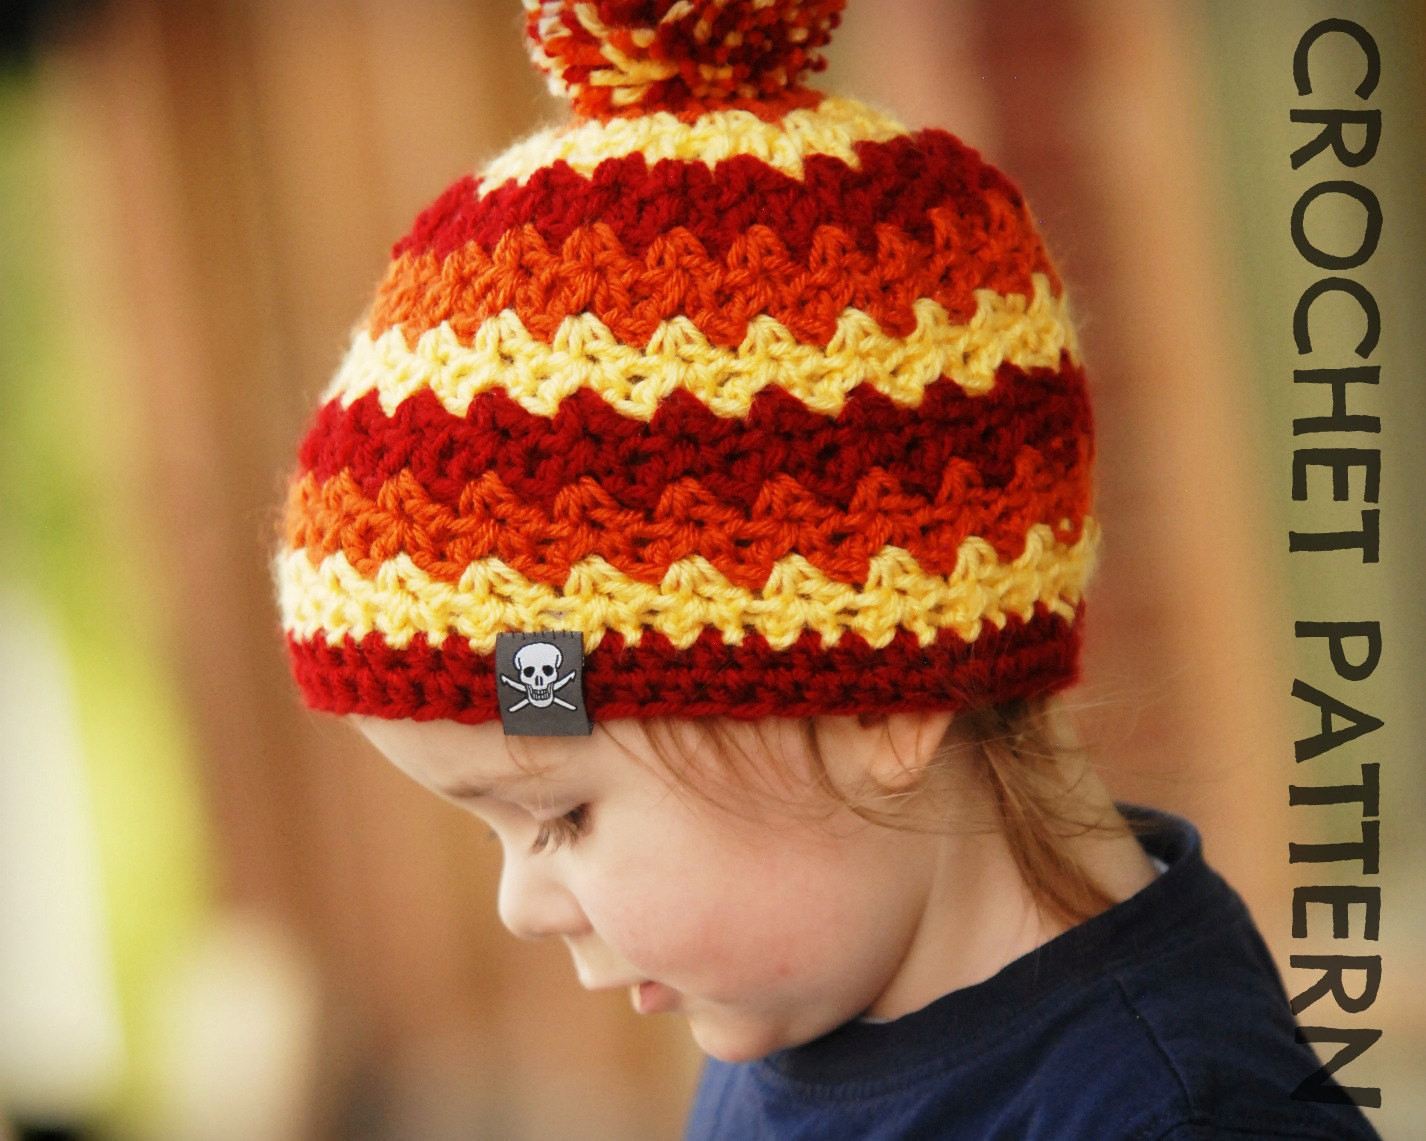 Crochet Kids Beanie Unique Crochet Hat Pattern Kids Ziggy Beanie Of Marvelous 41 Ideas Crochet Kids Beanie